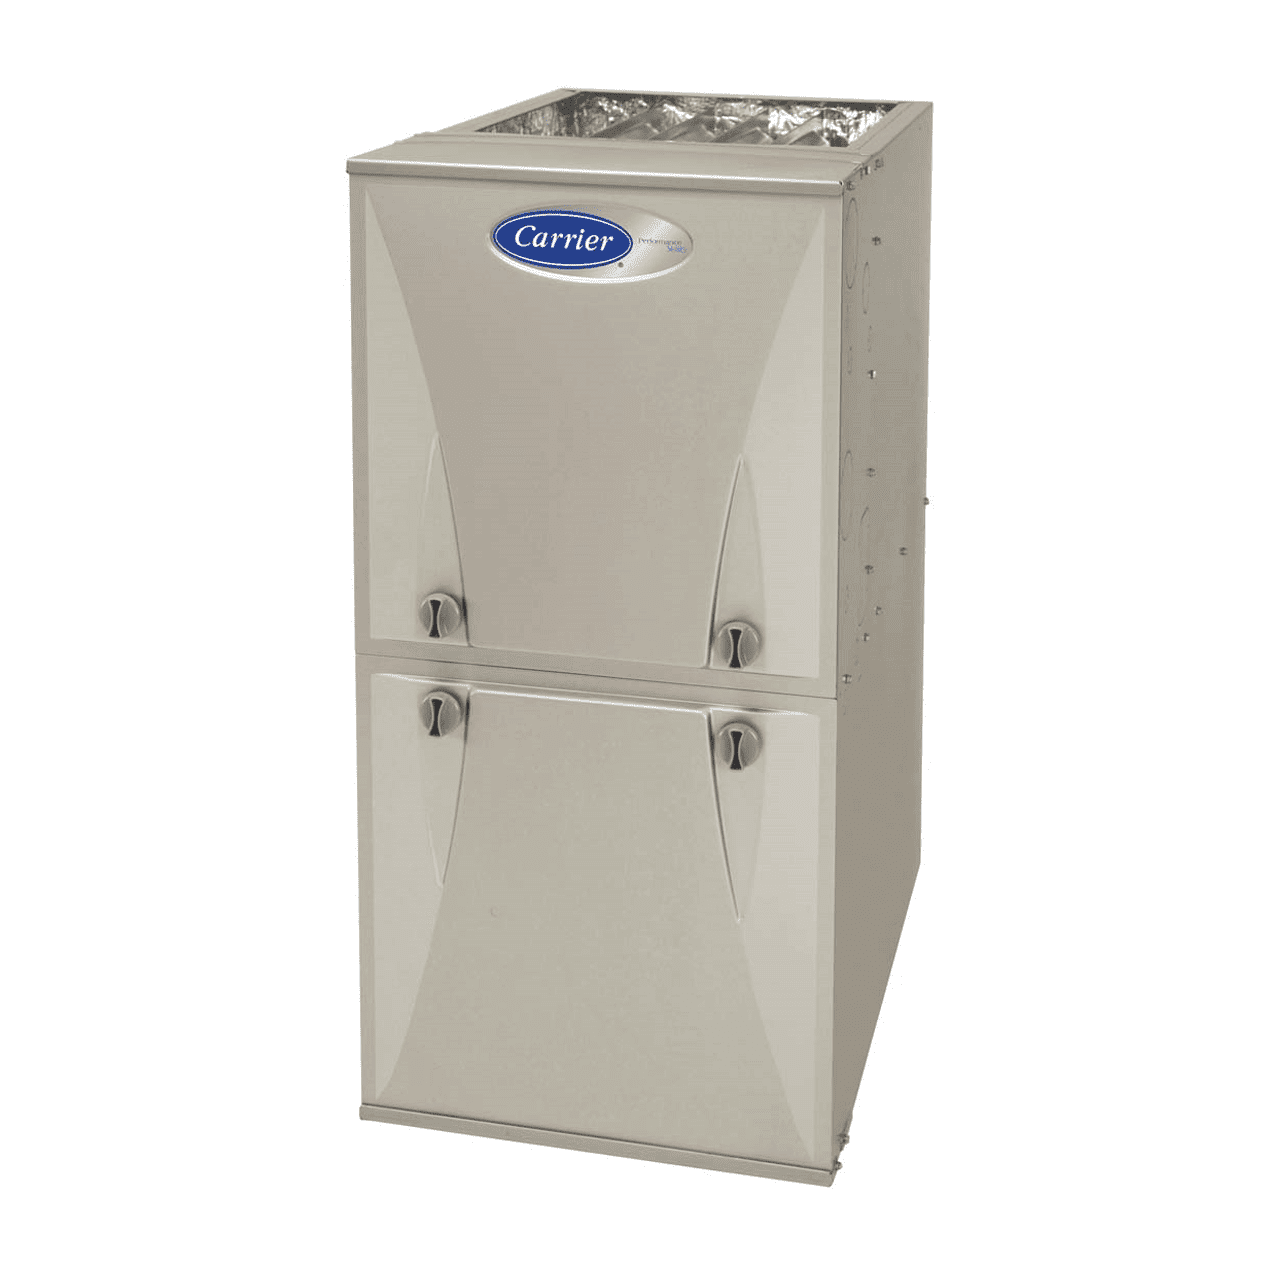 Performance™ 95 Gas Furnace Model: 59TP5